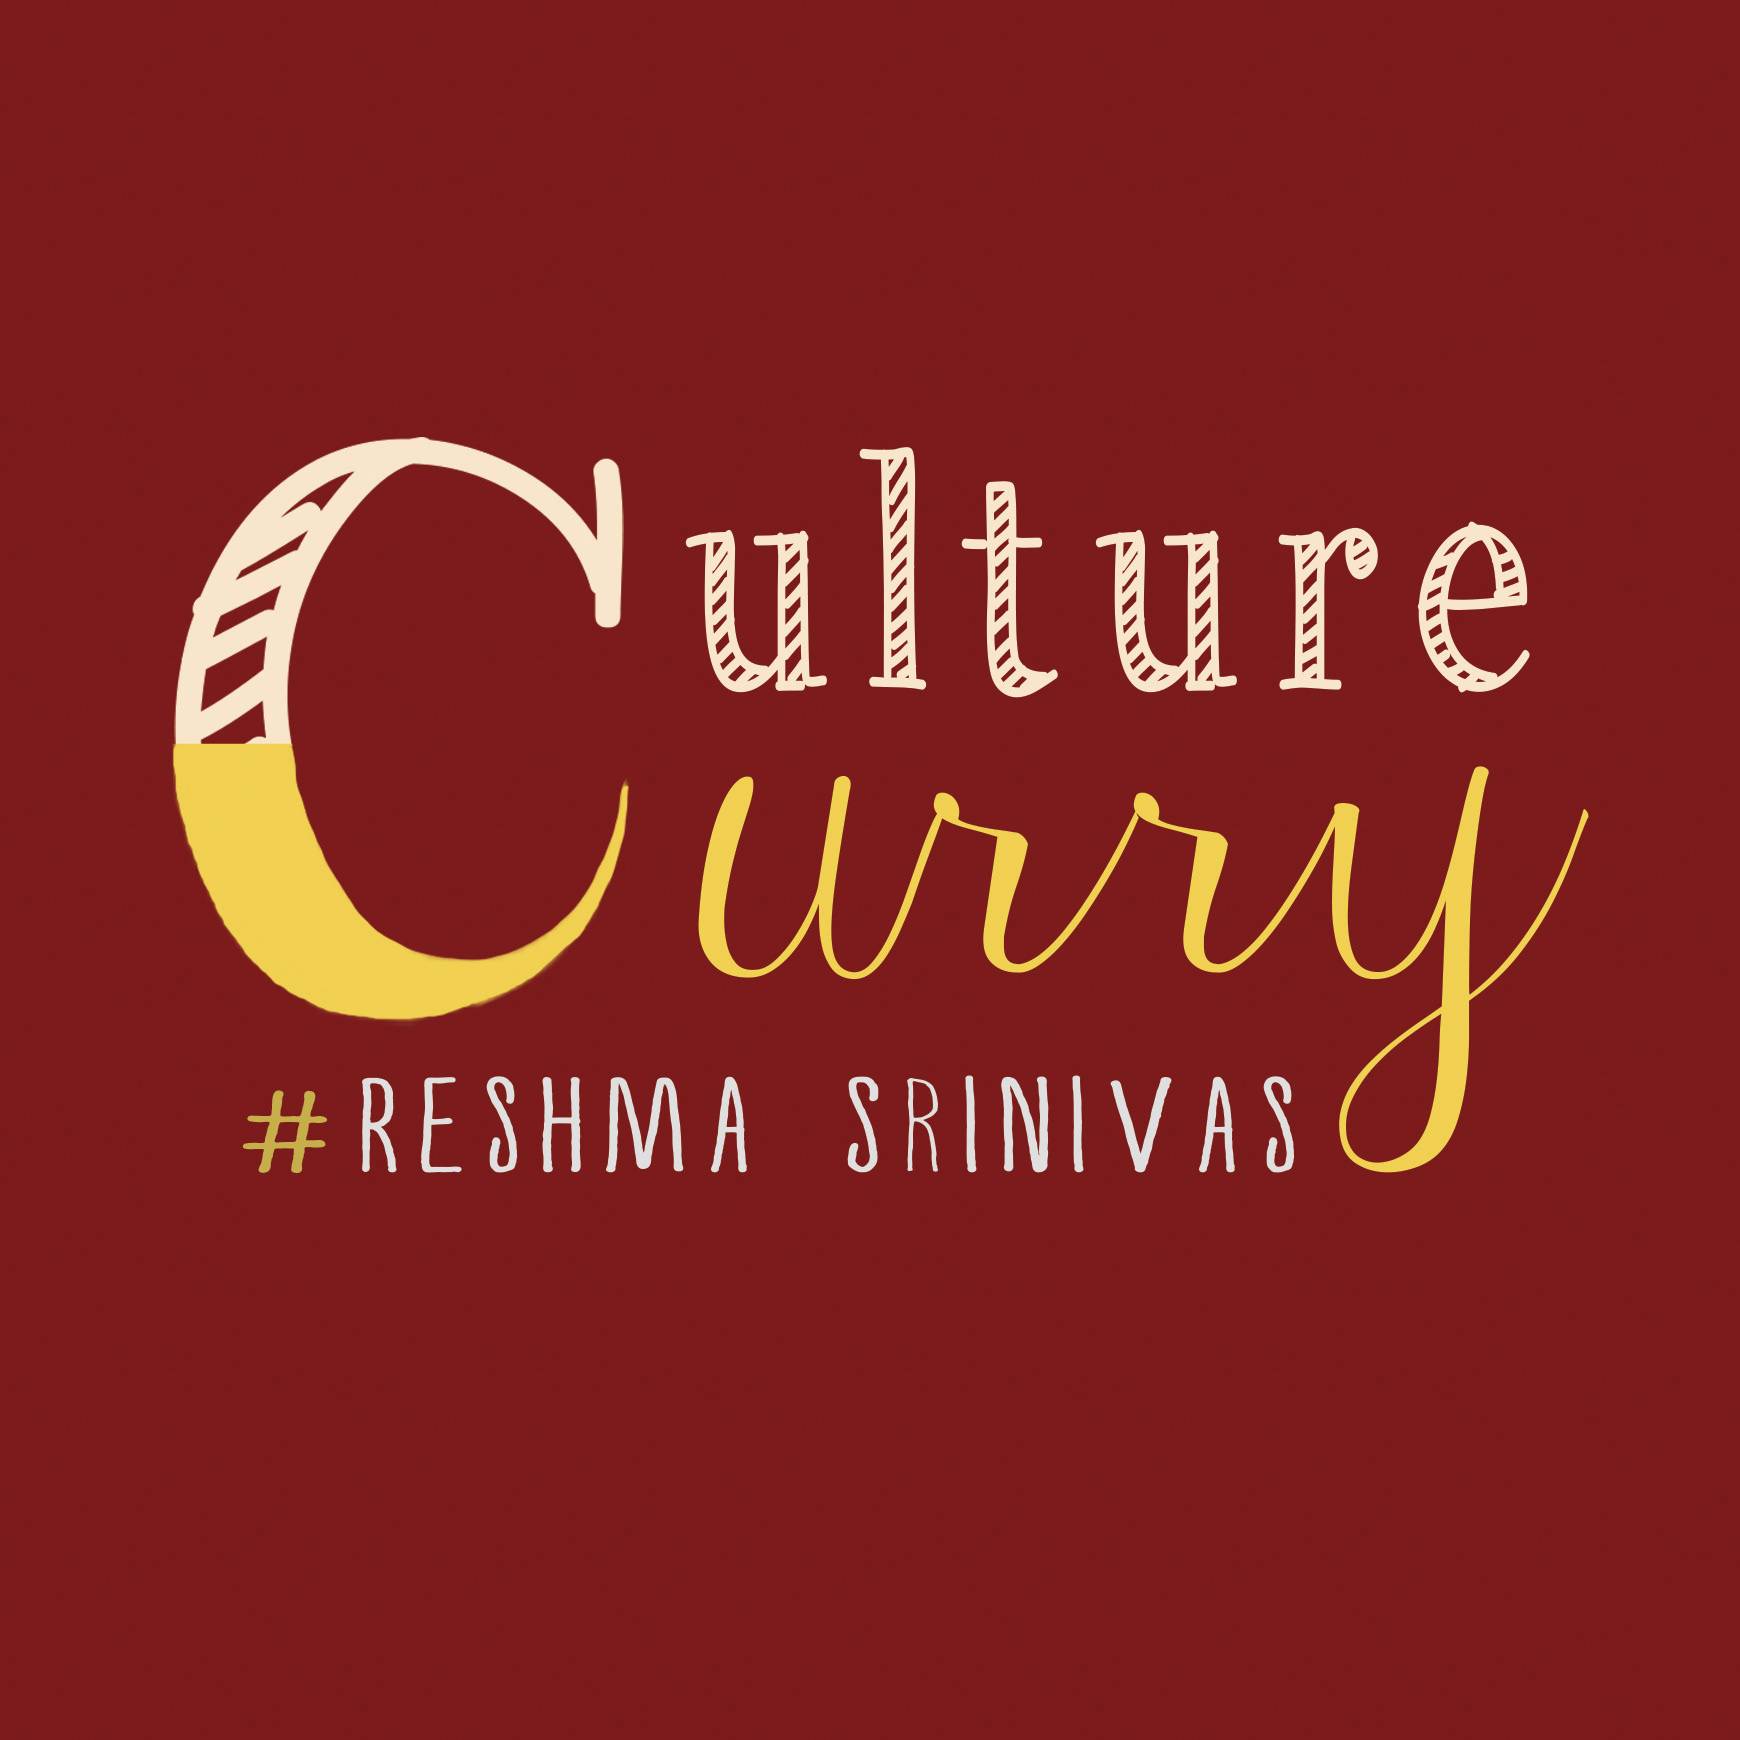 Culture Curry - Creative Invitations - Indian E-Invitations